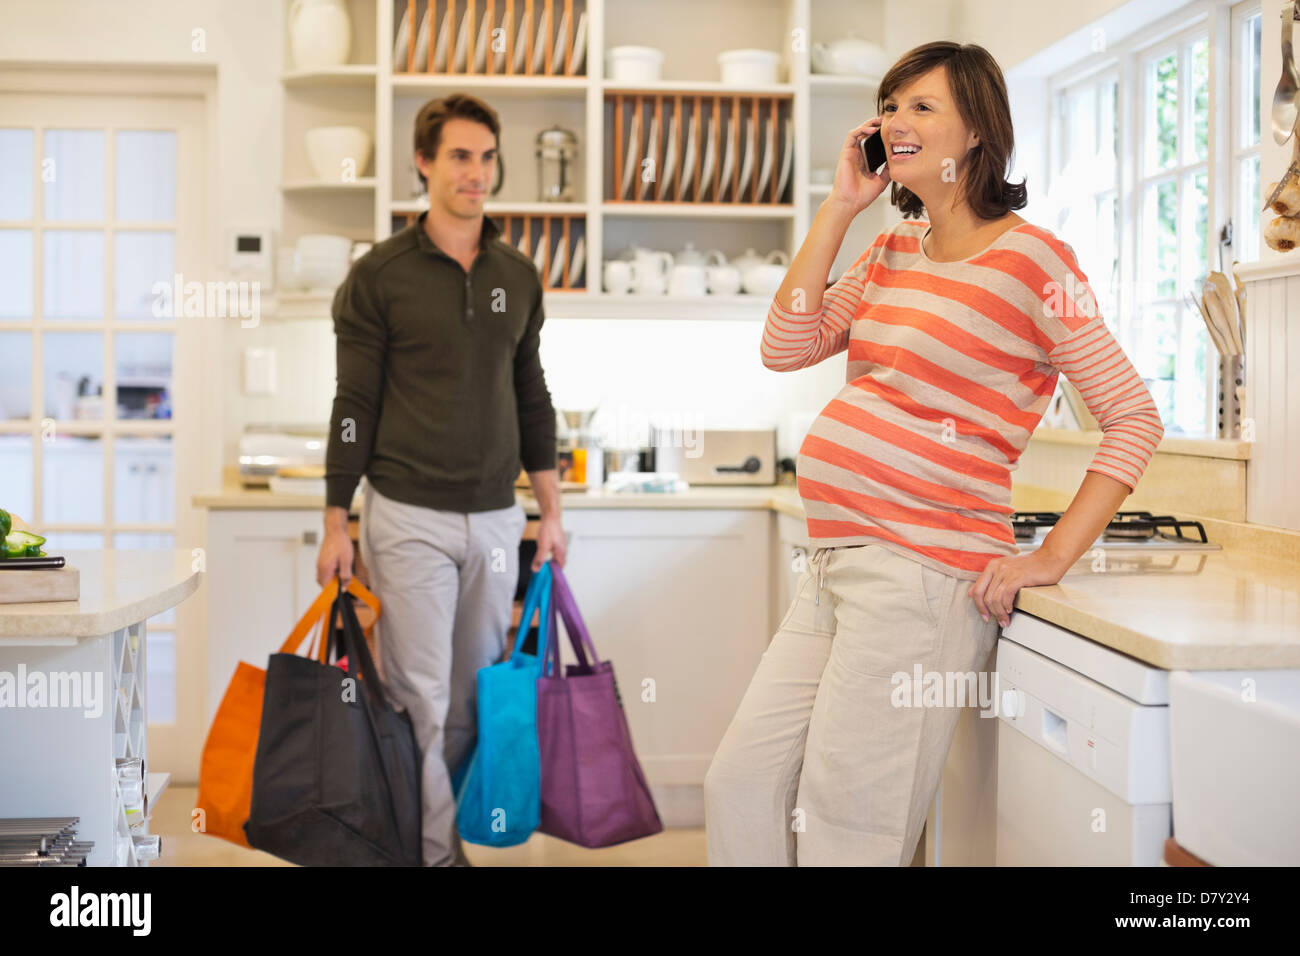 Man carrying bags for pregnant girlfriend - Stock Image